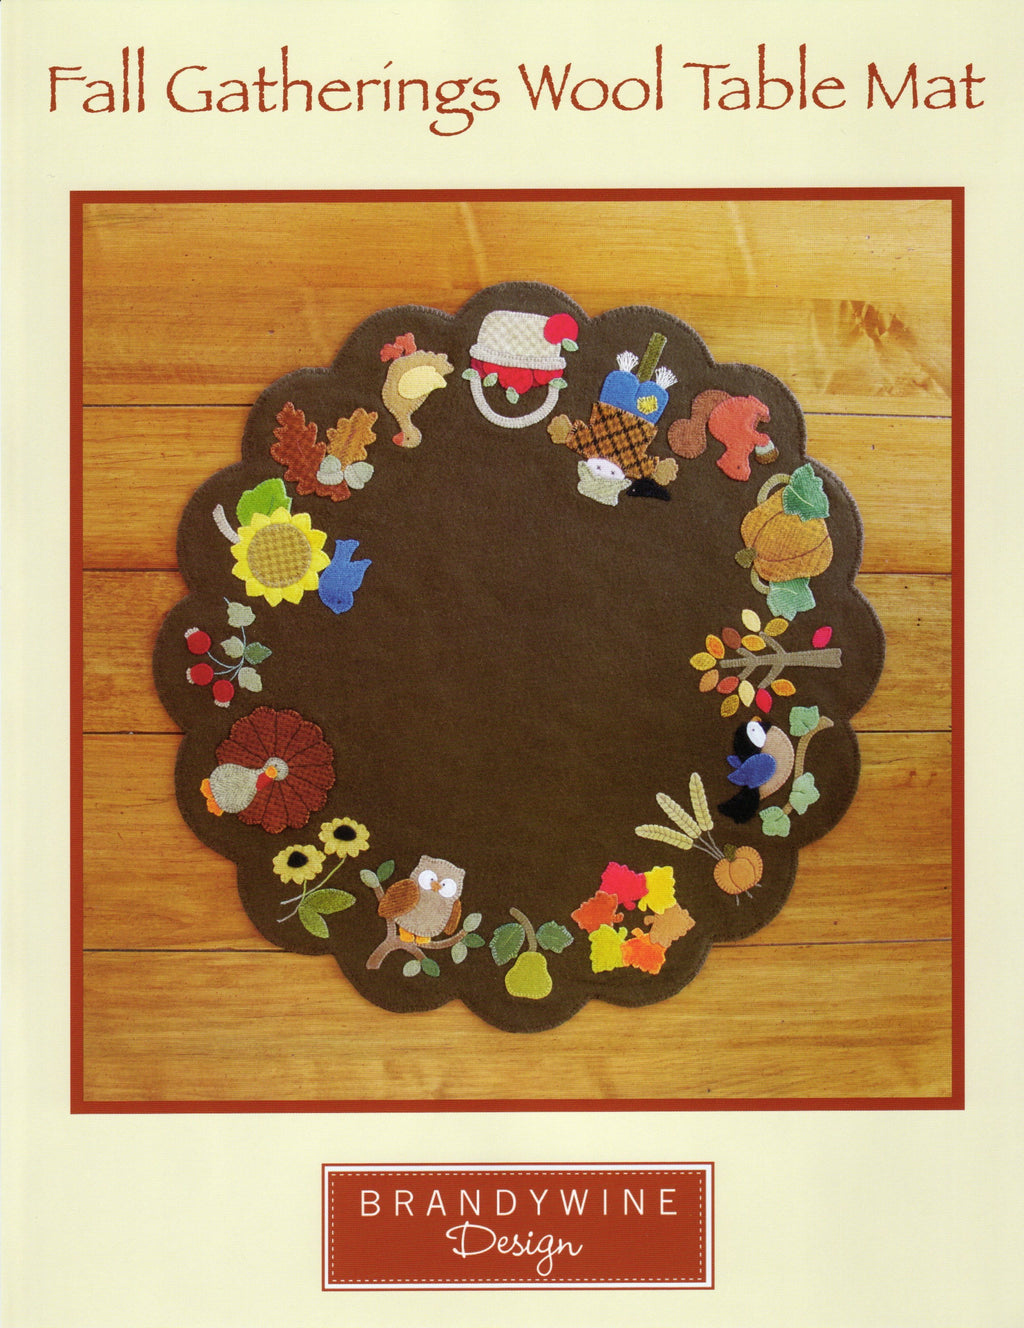 Fall Gatherings Wool Table Mat